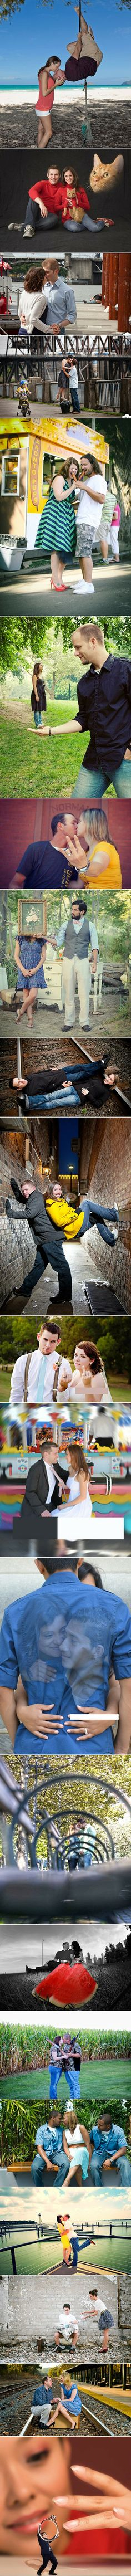 Here are some really bad engagement photos that have gone viral online. One of them looks exactly like the Harbor in Rockwall!!